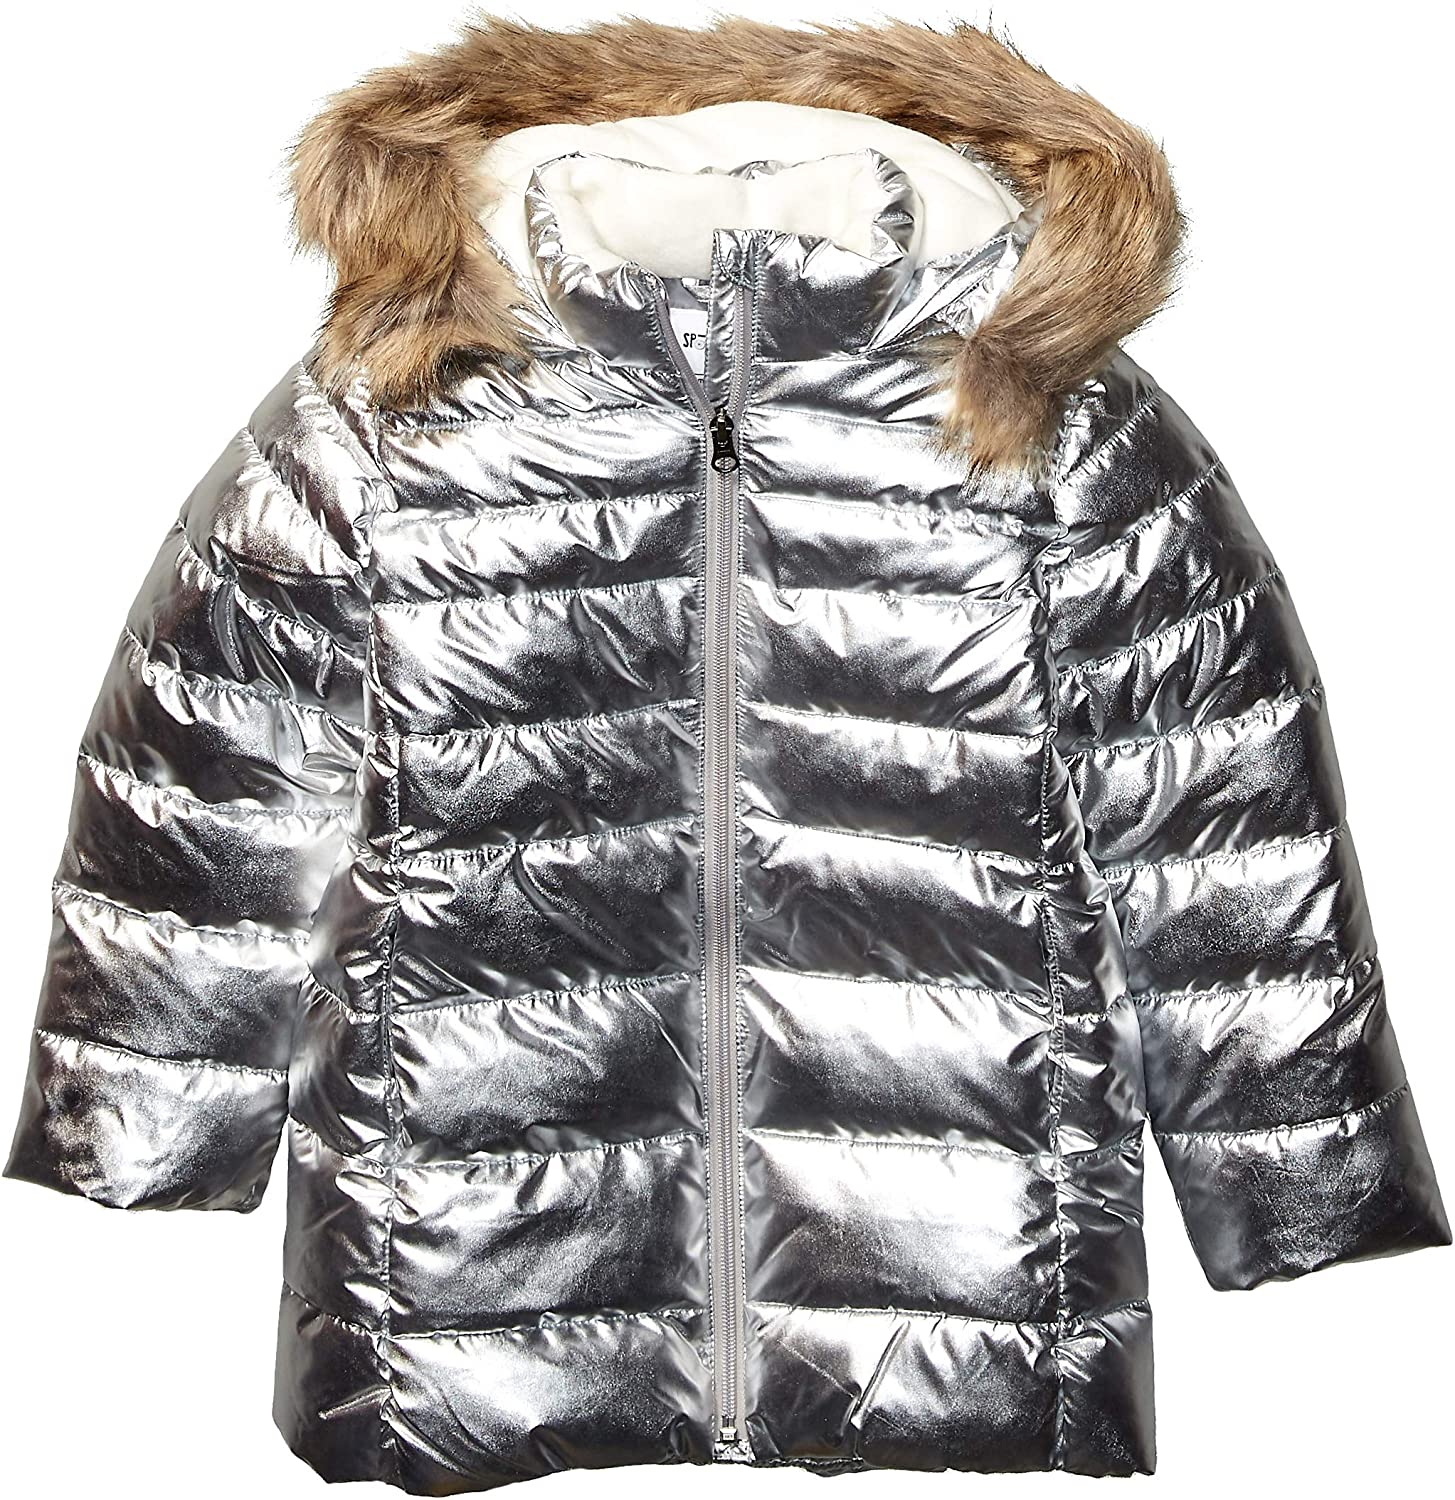 Brand - Spotted Zebra Girls' Long Puffer Coat : Clothing, Shoes & Jewelry